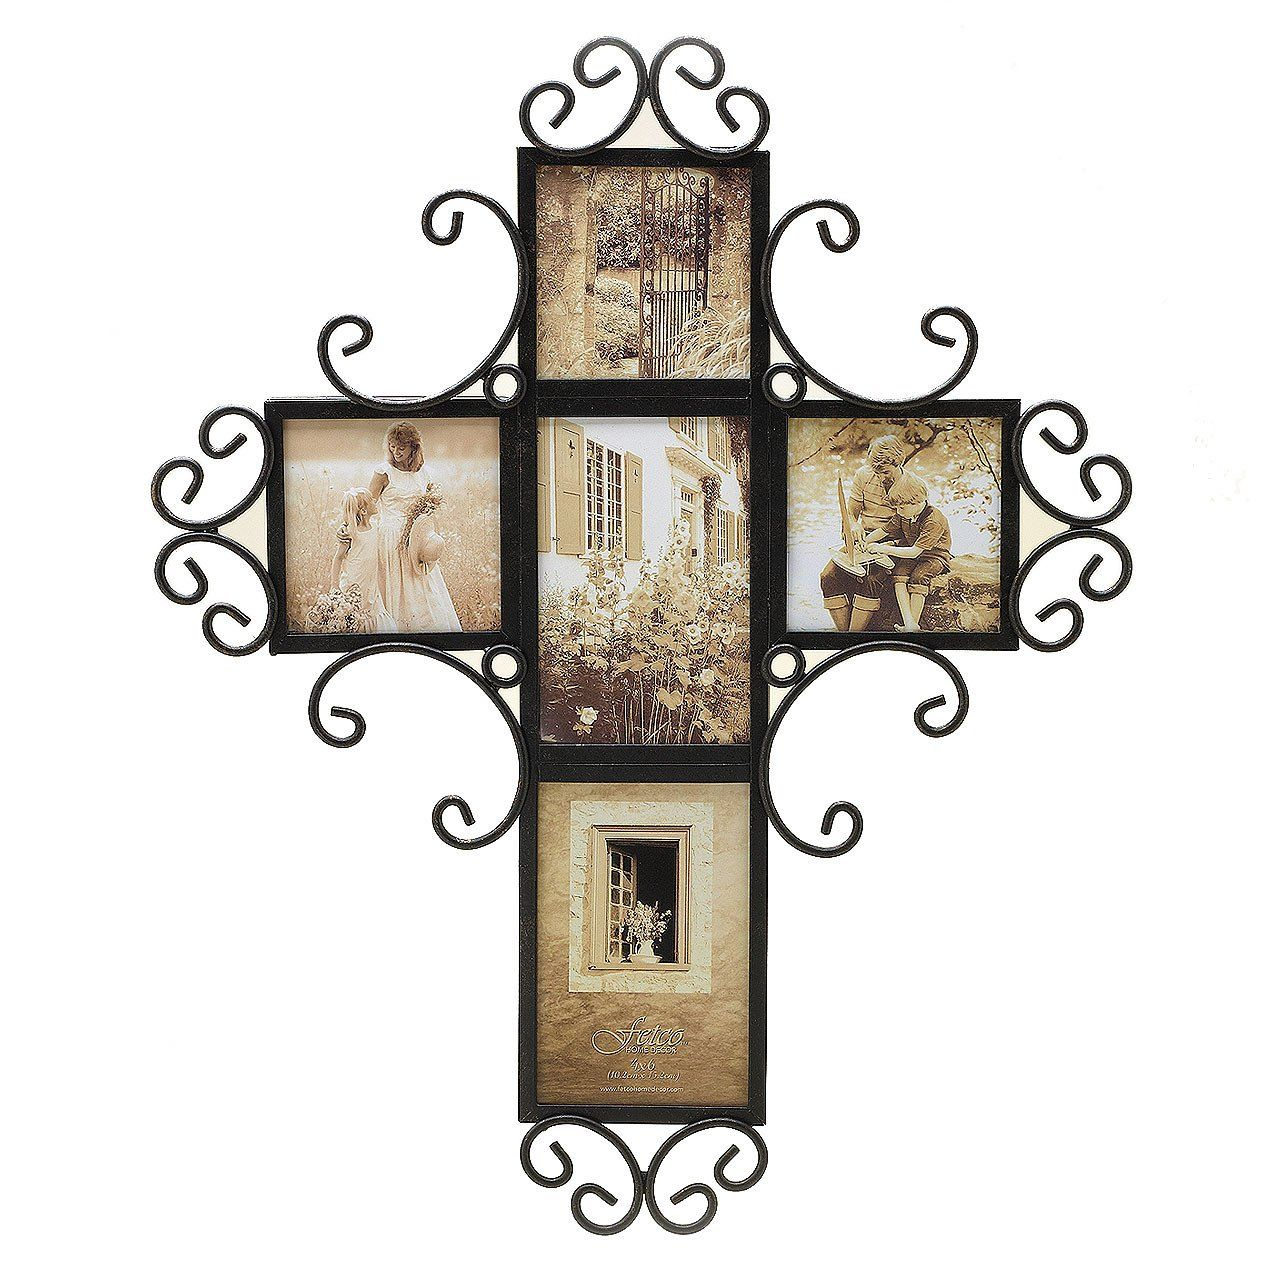 Fetco Home Decor Tuscan Alton Five Opening Wall Collage